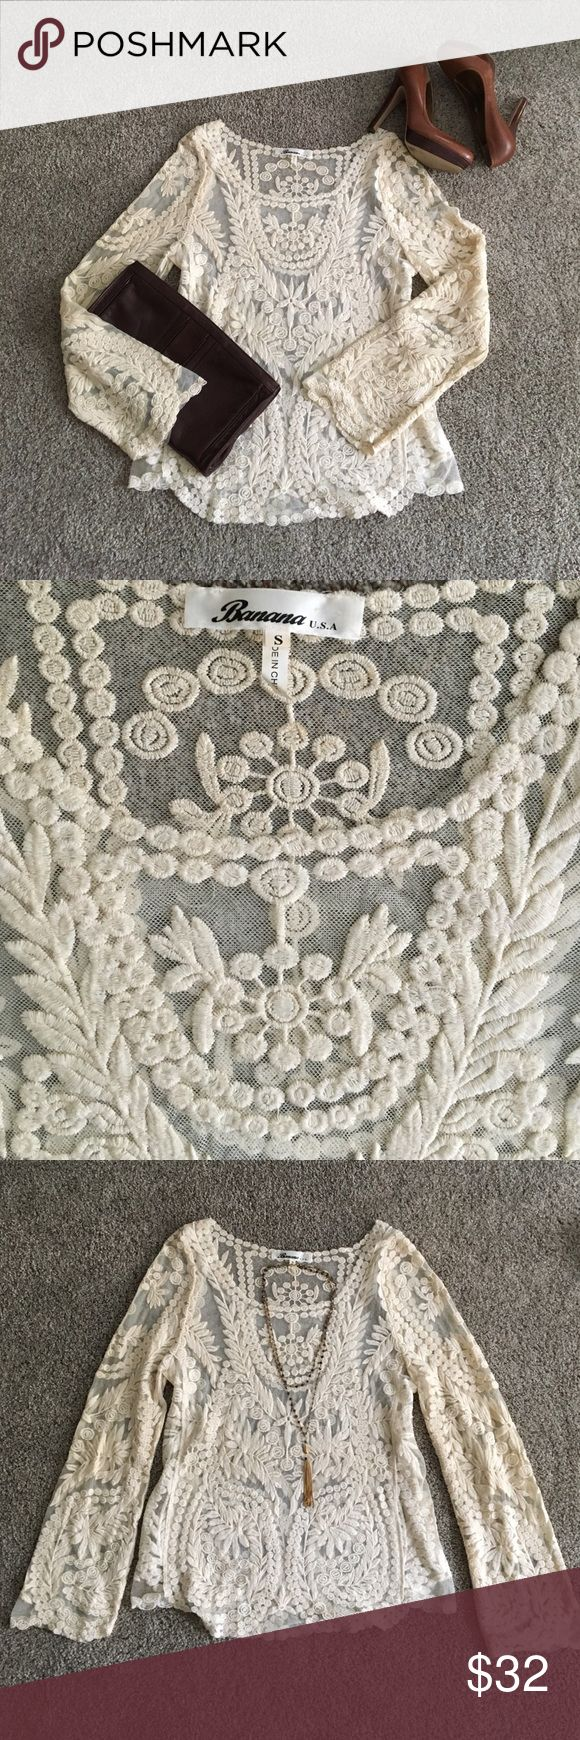 Cream Lace Top Gorgeous embroidered lace detail with flowy sleeve & scalloped lace edges. Great condition! Banana USA Tops